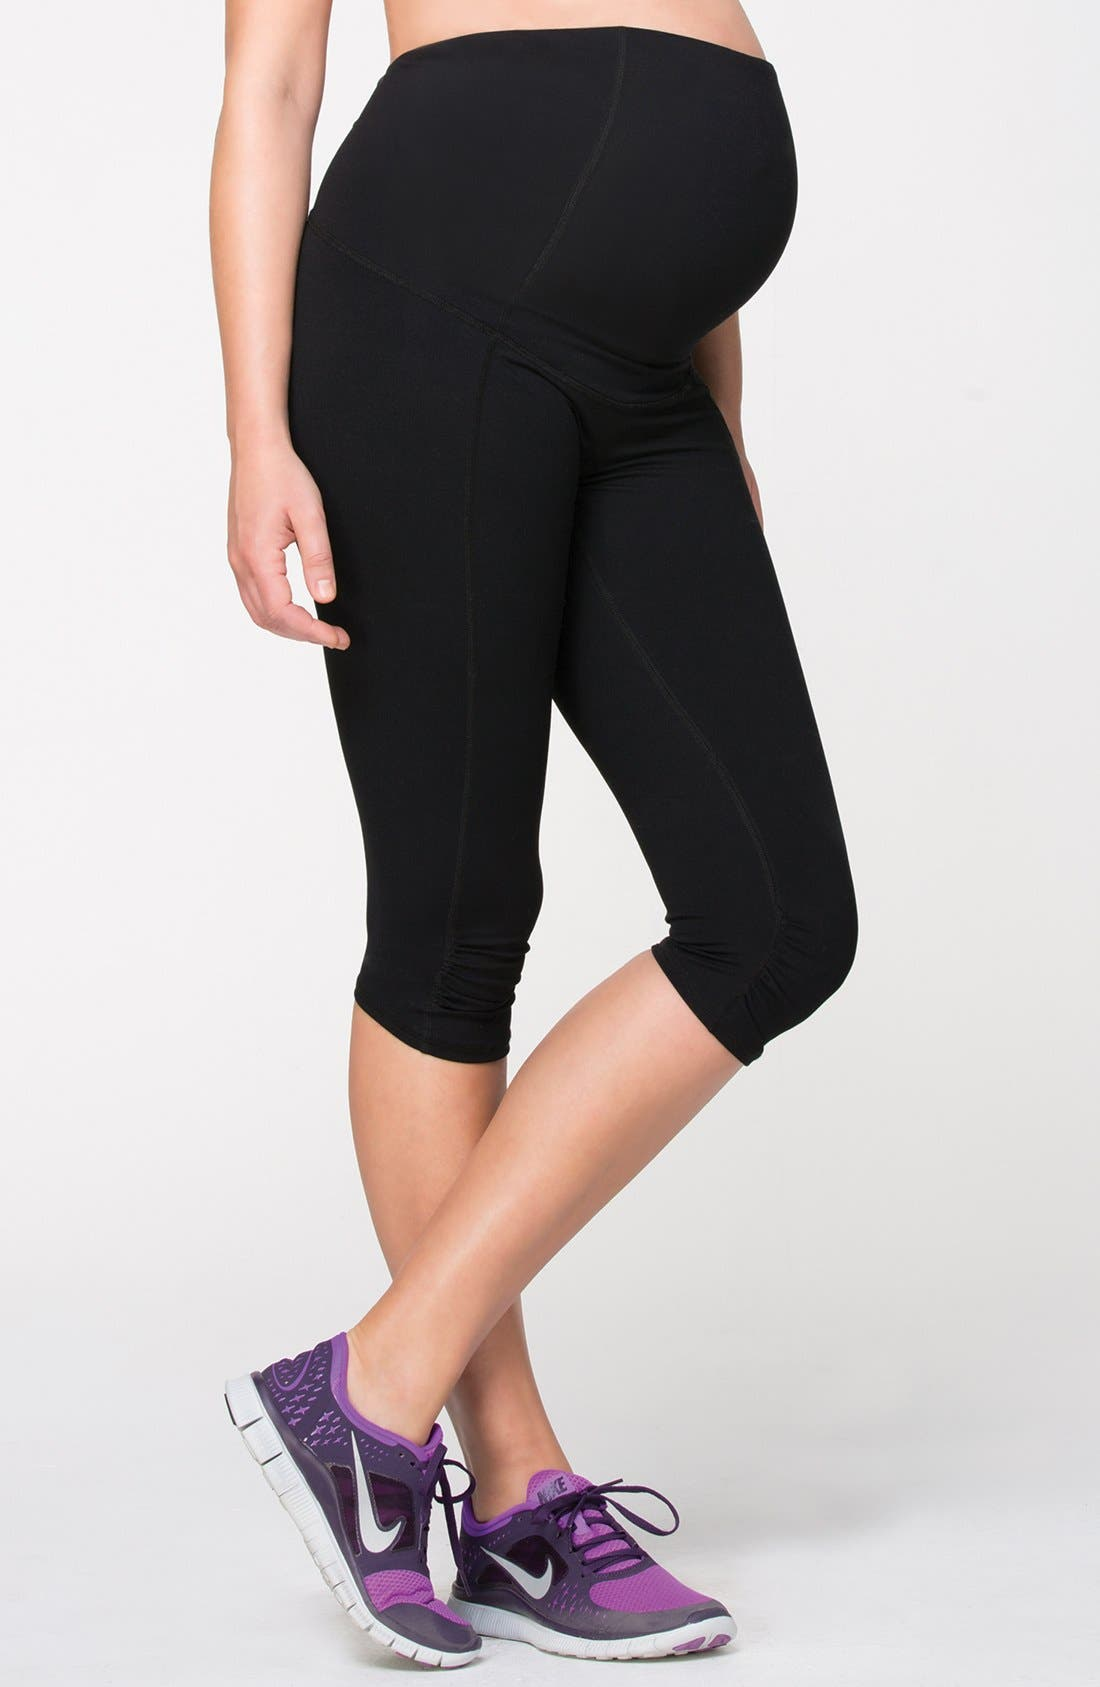 Women's Ingrid & Isabel Knee Length Active Maternity Pants With Crossover Panel